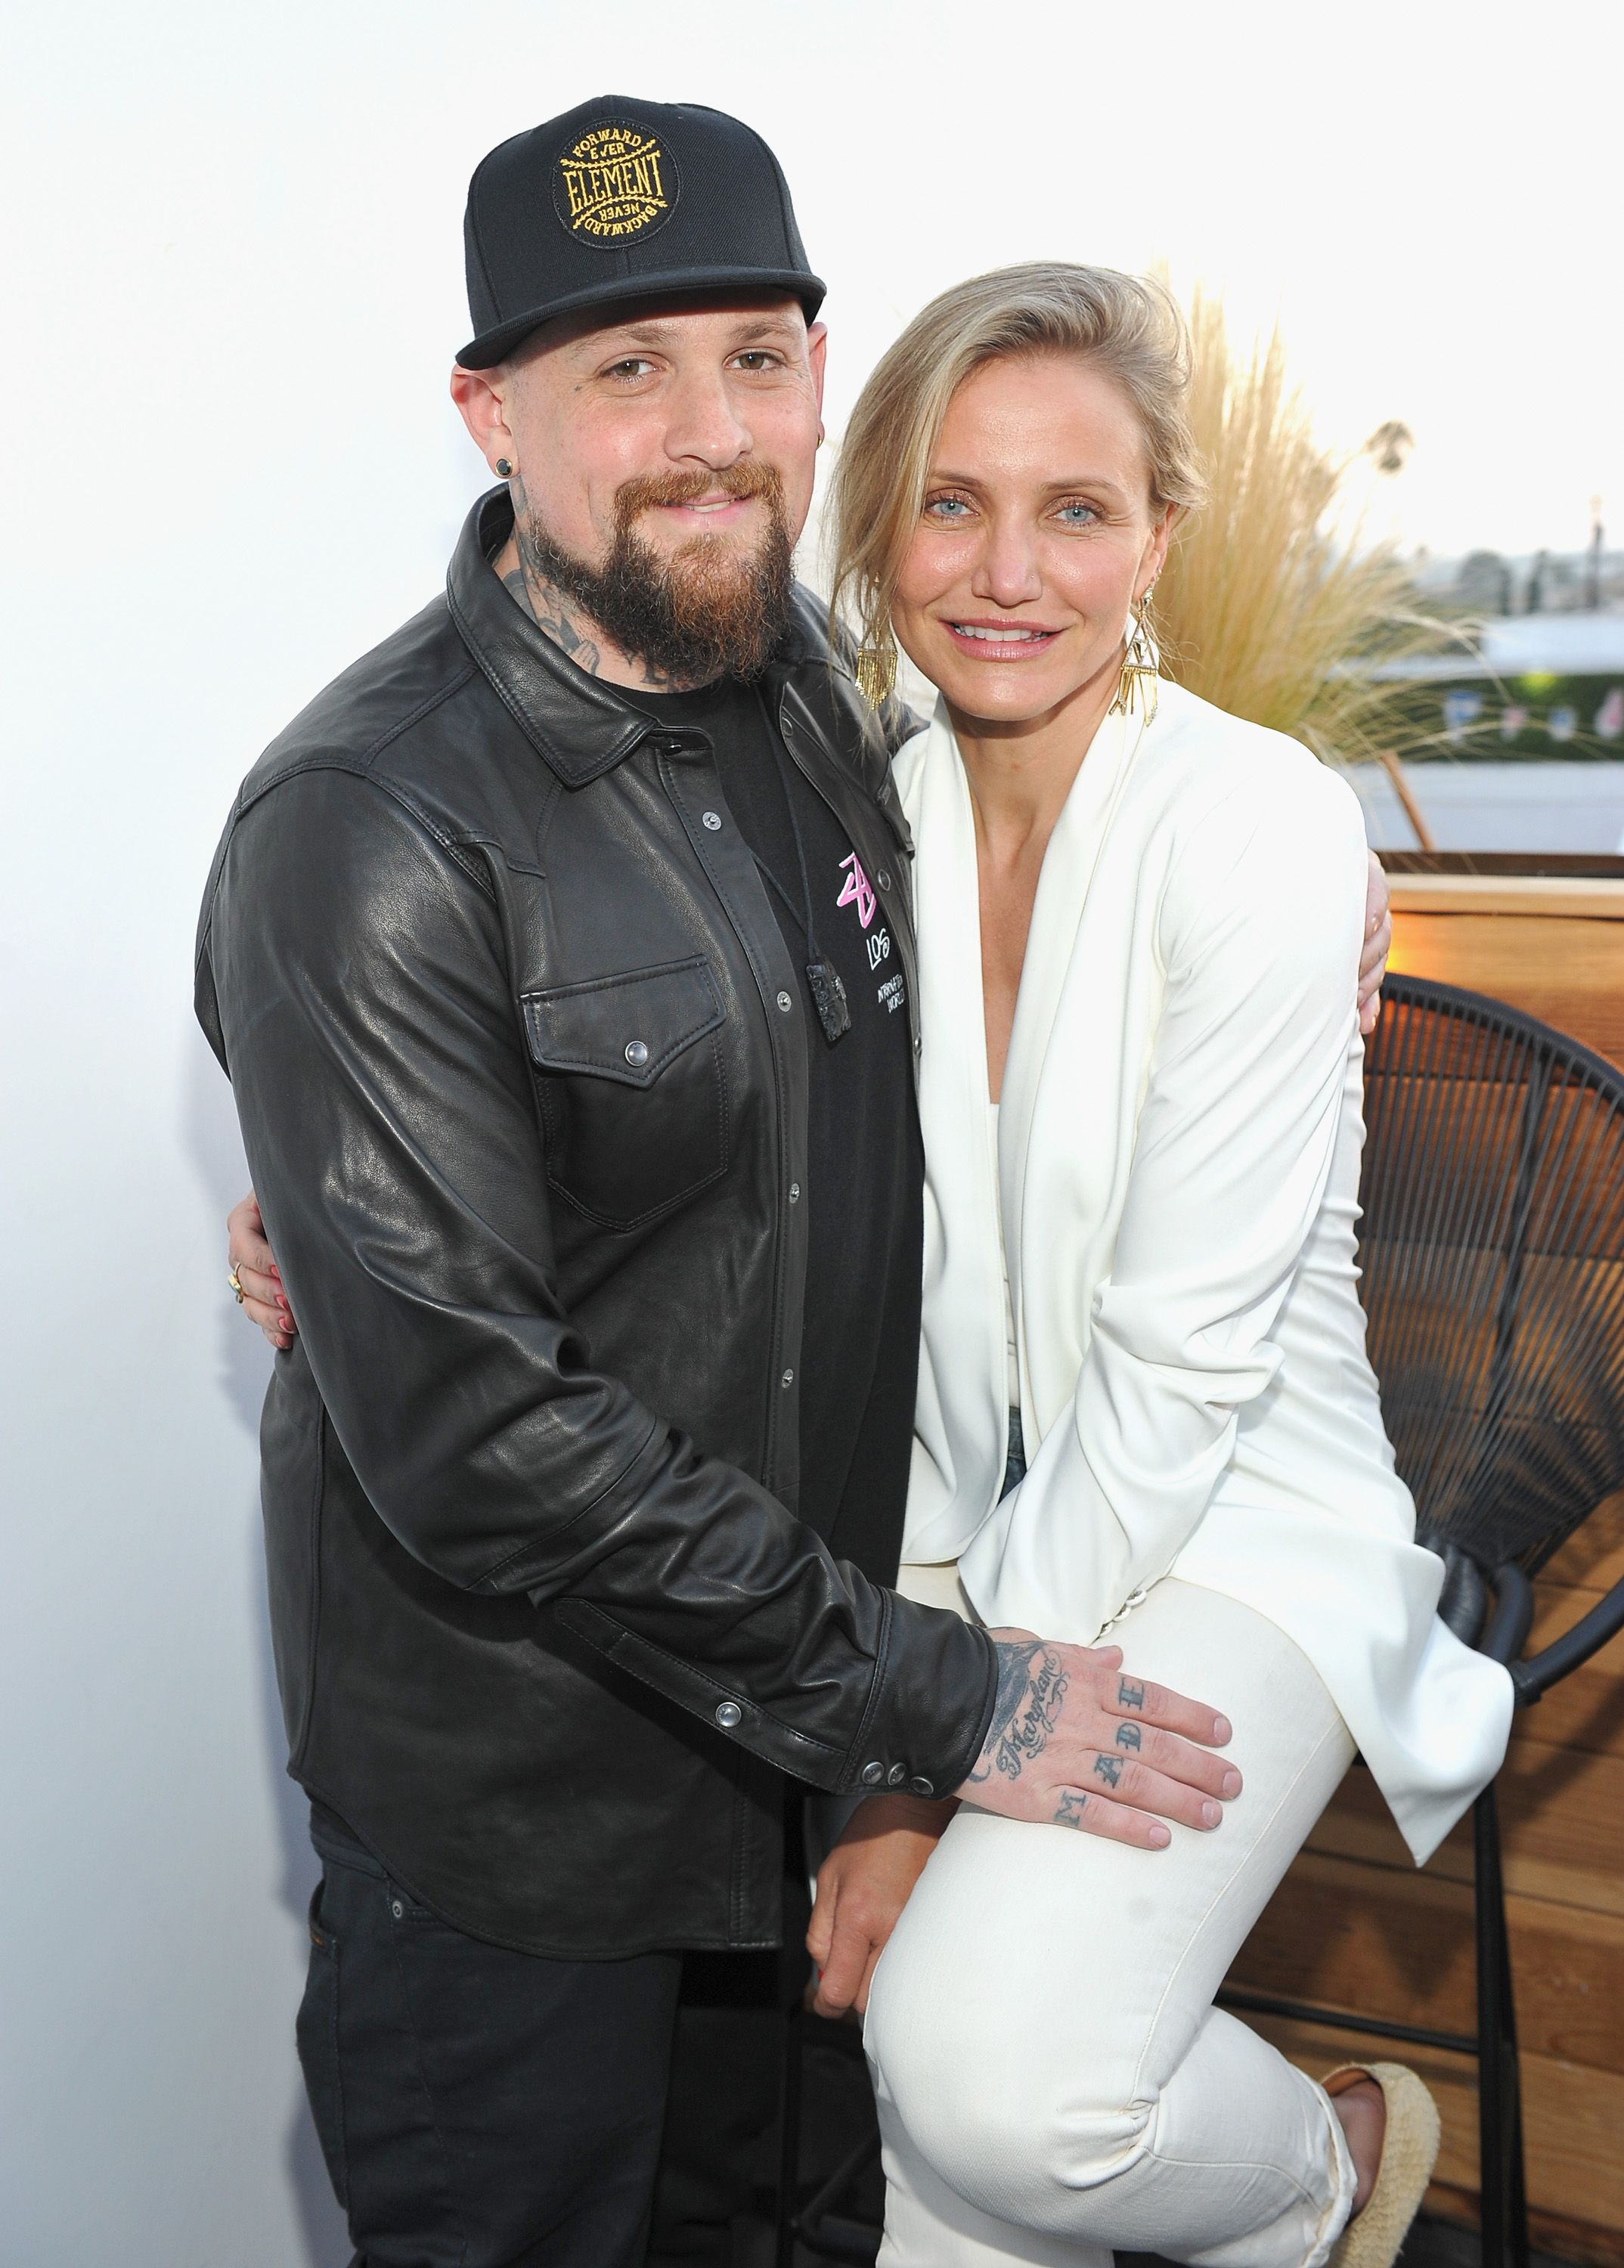 Cameron Diaz Gives a Rare Interview on Her and Marriage With Benji Madden, Her Secret Project and Life After Acting